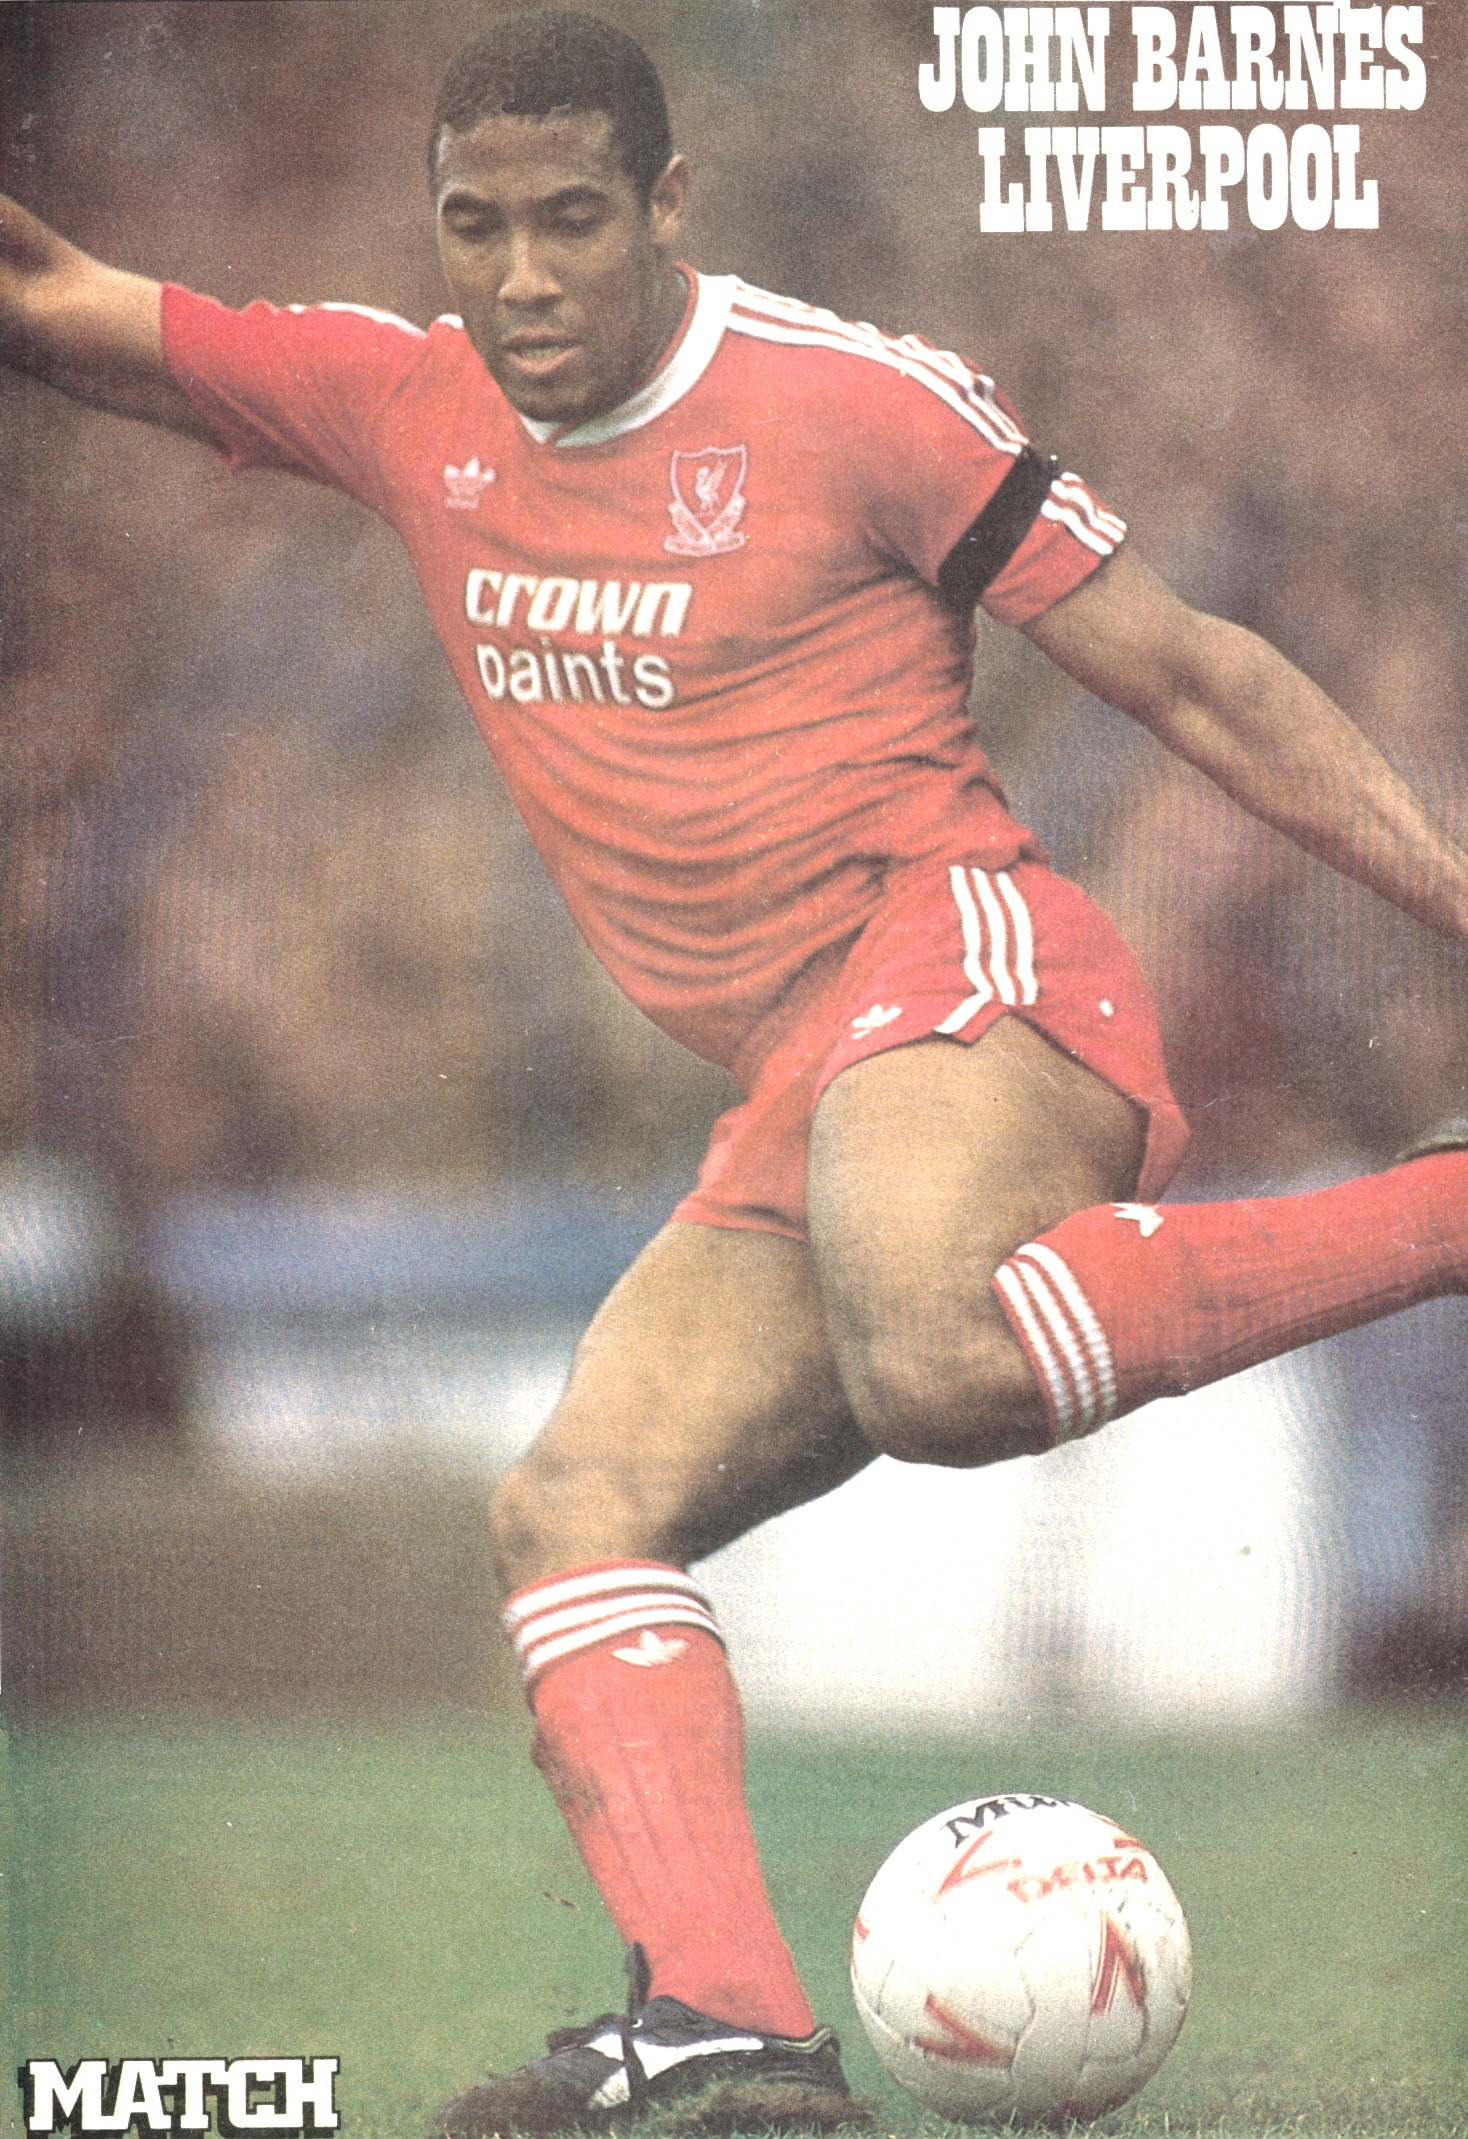 Match poster of Barnes in 1988